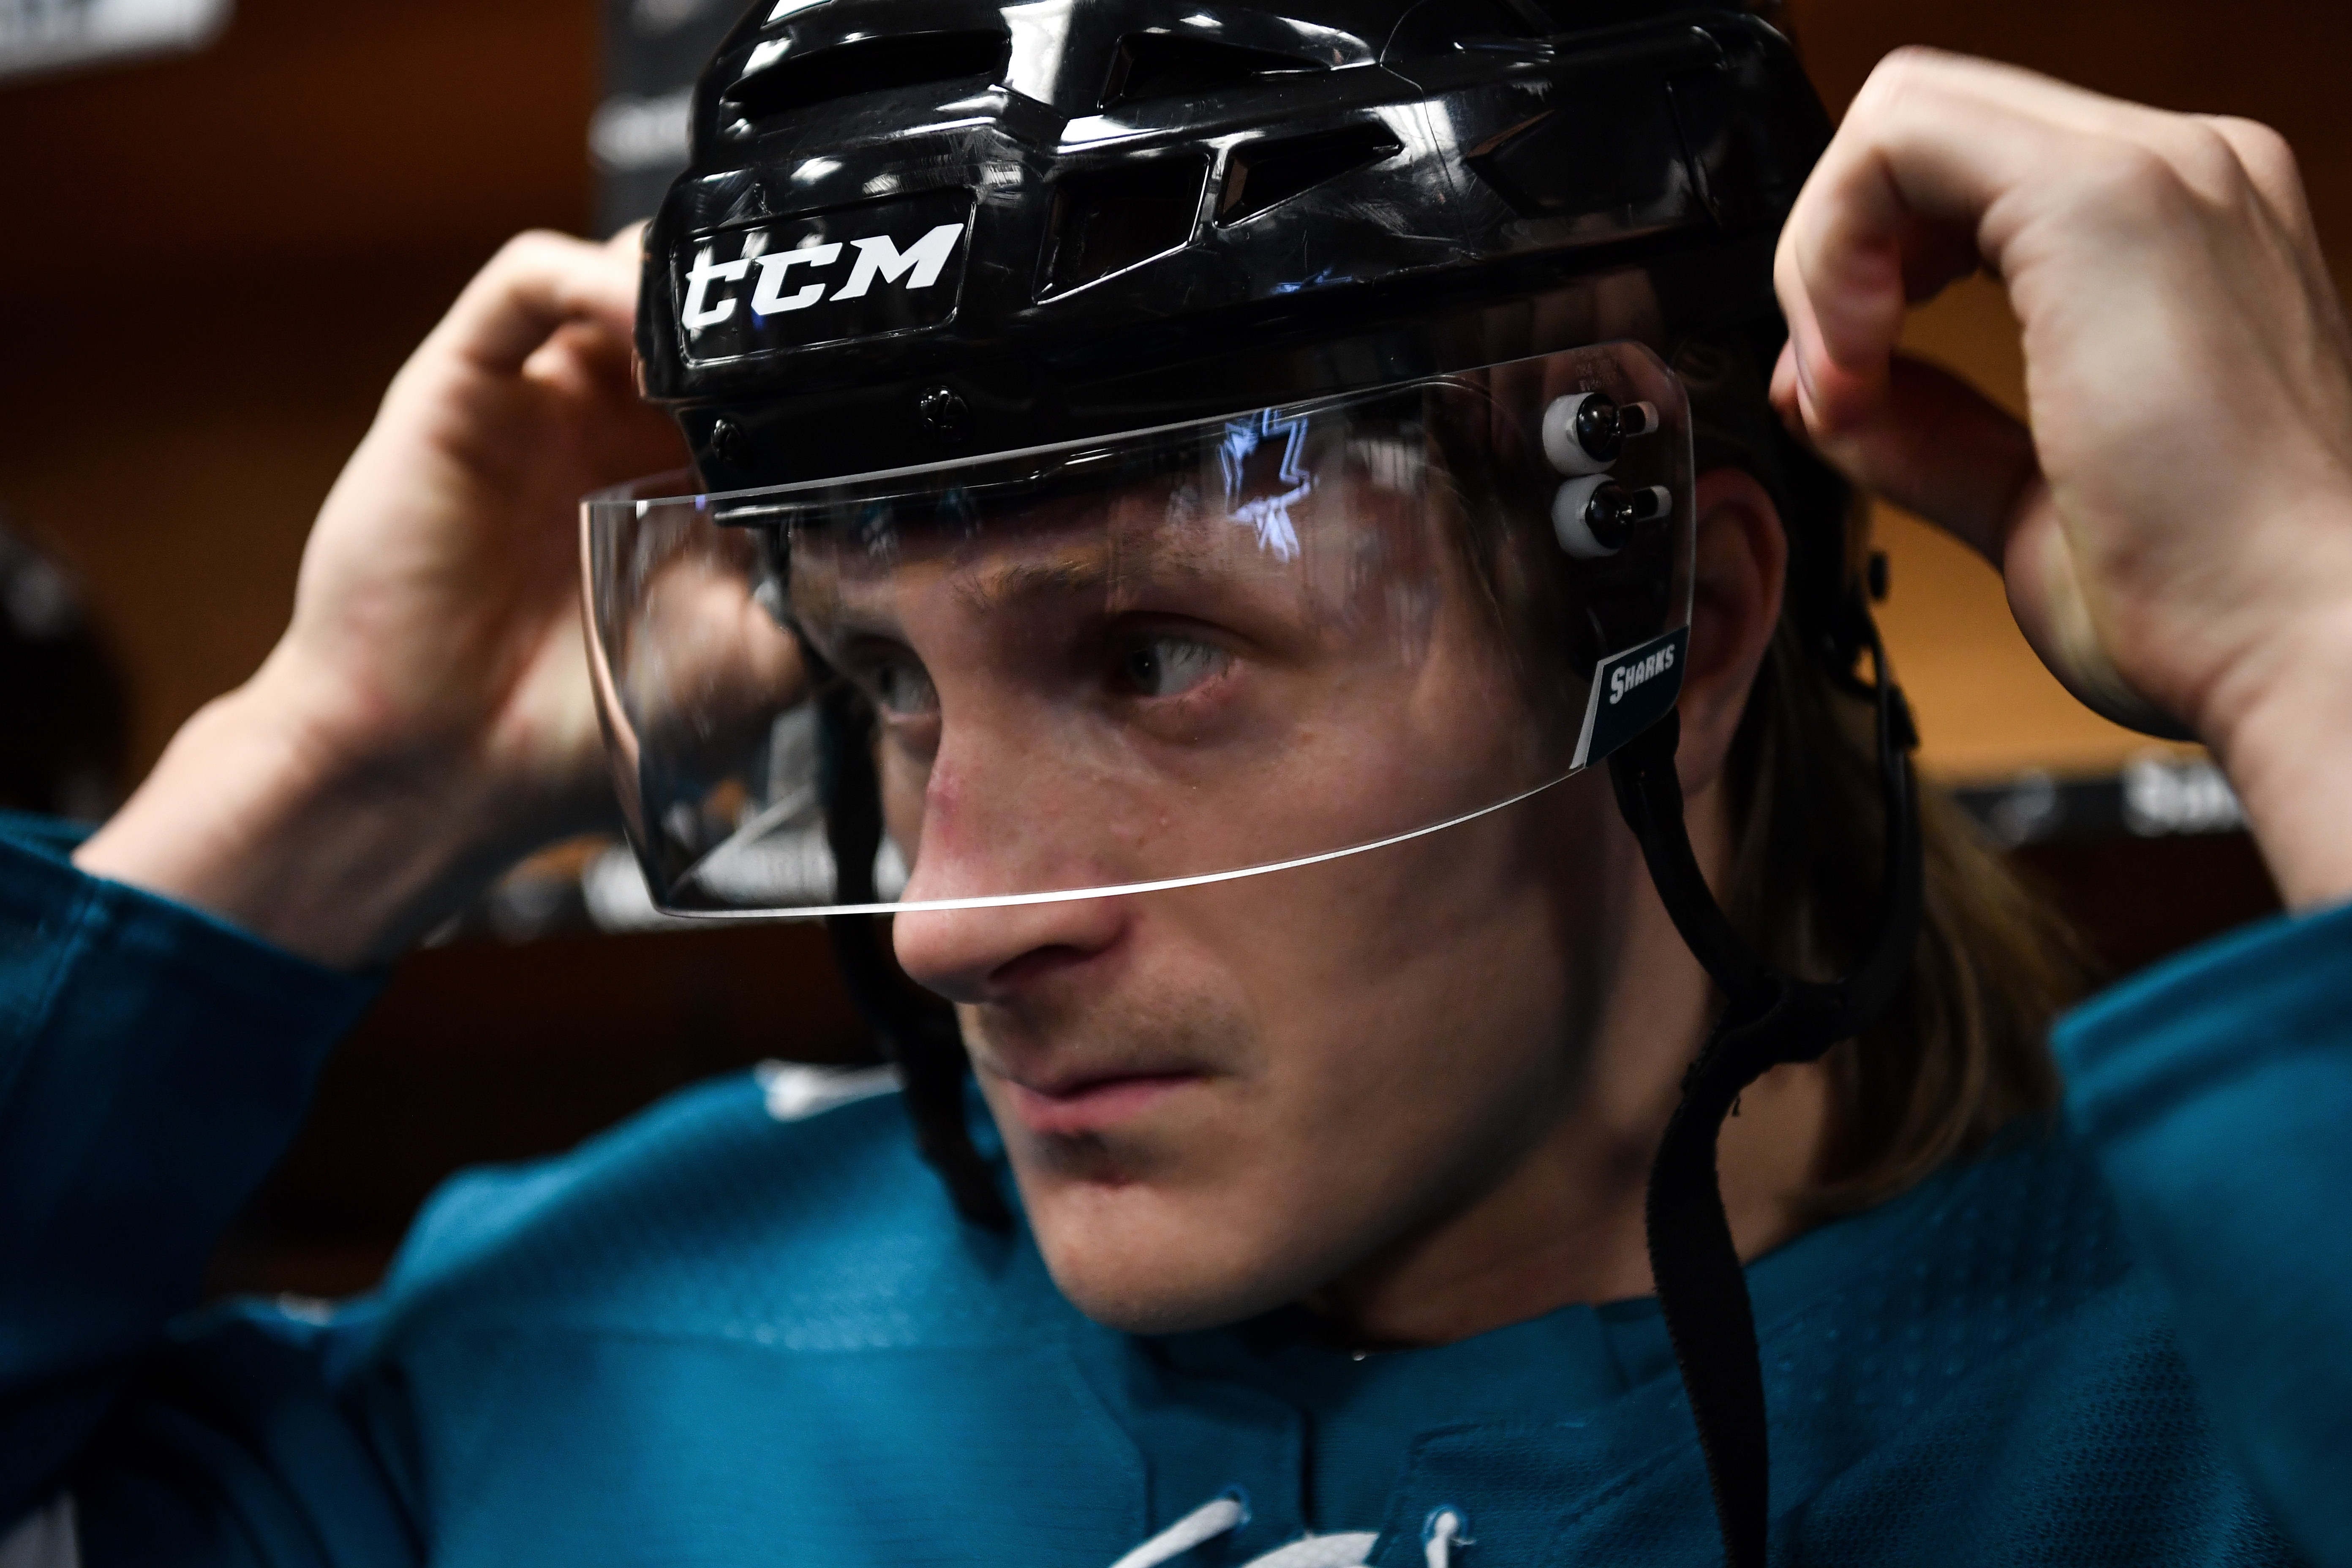 Marcus Sorensen #20 of the San Jose Sharks prepares to take the ice for warmups in the locker room against the Ottawa Senators at SAP Center on March 7, 2020 in San Jose, California.